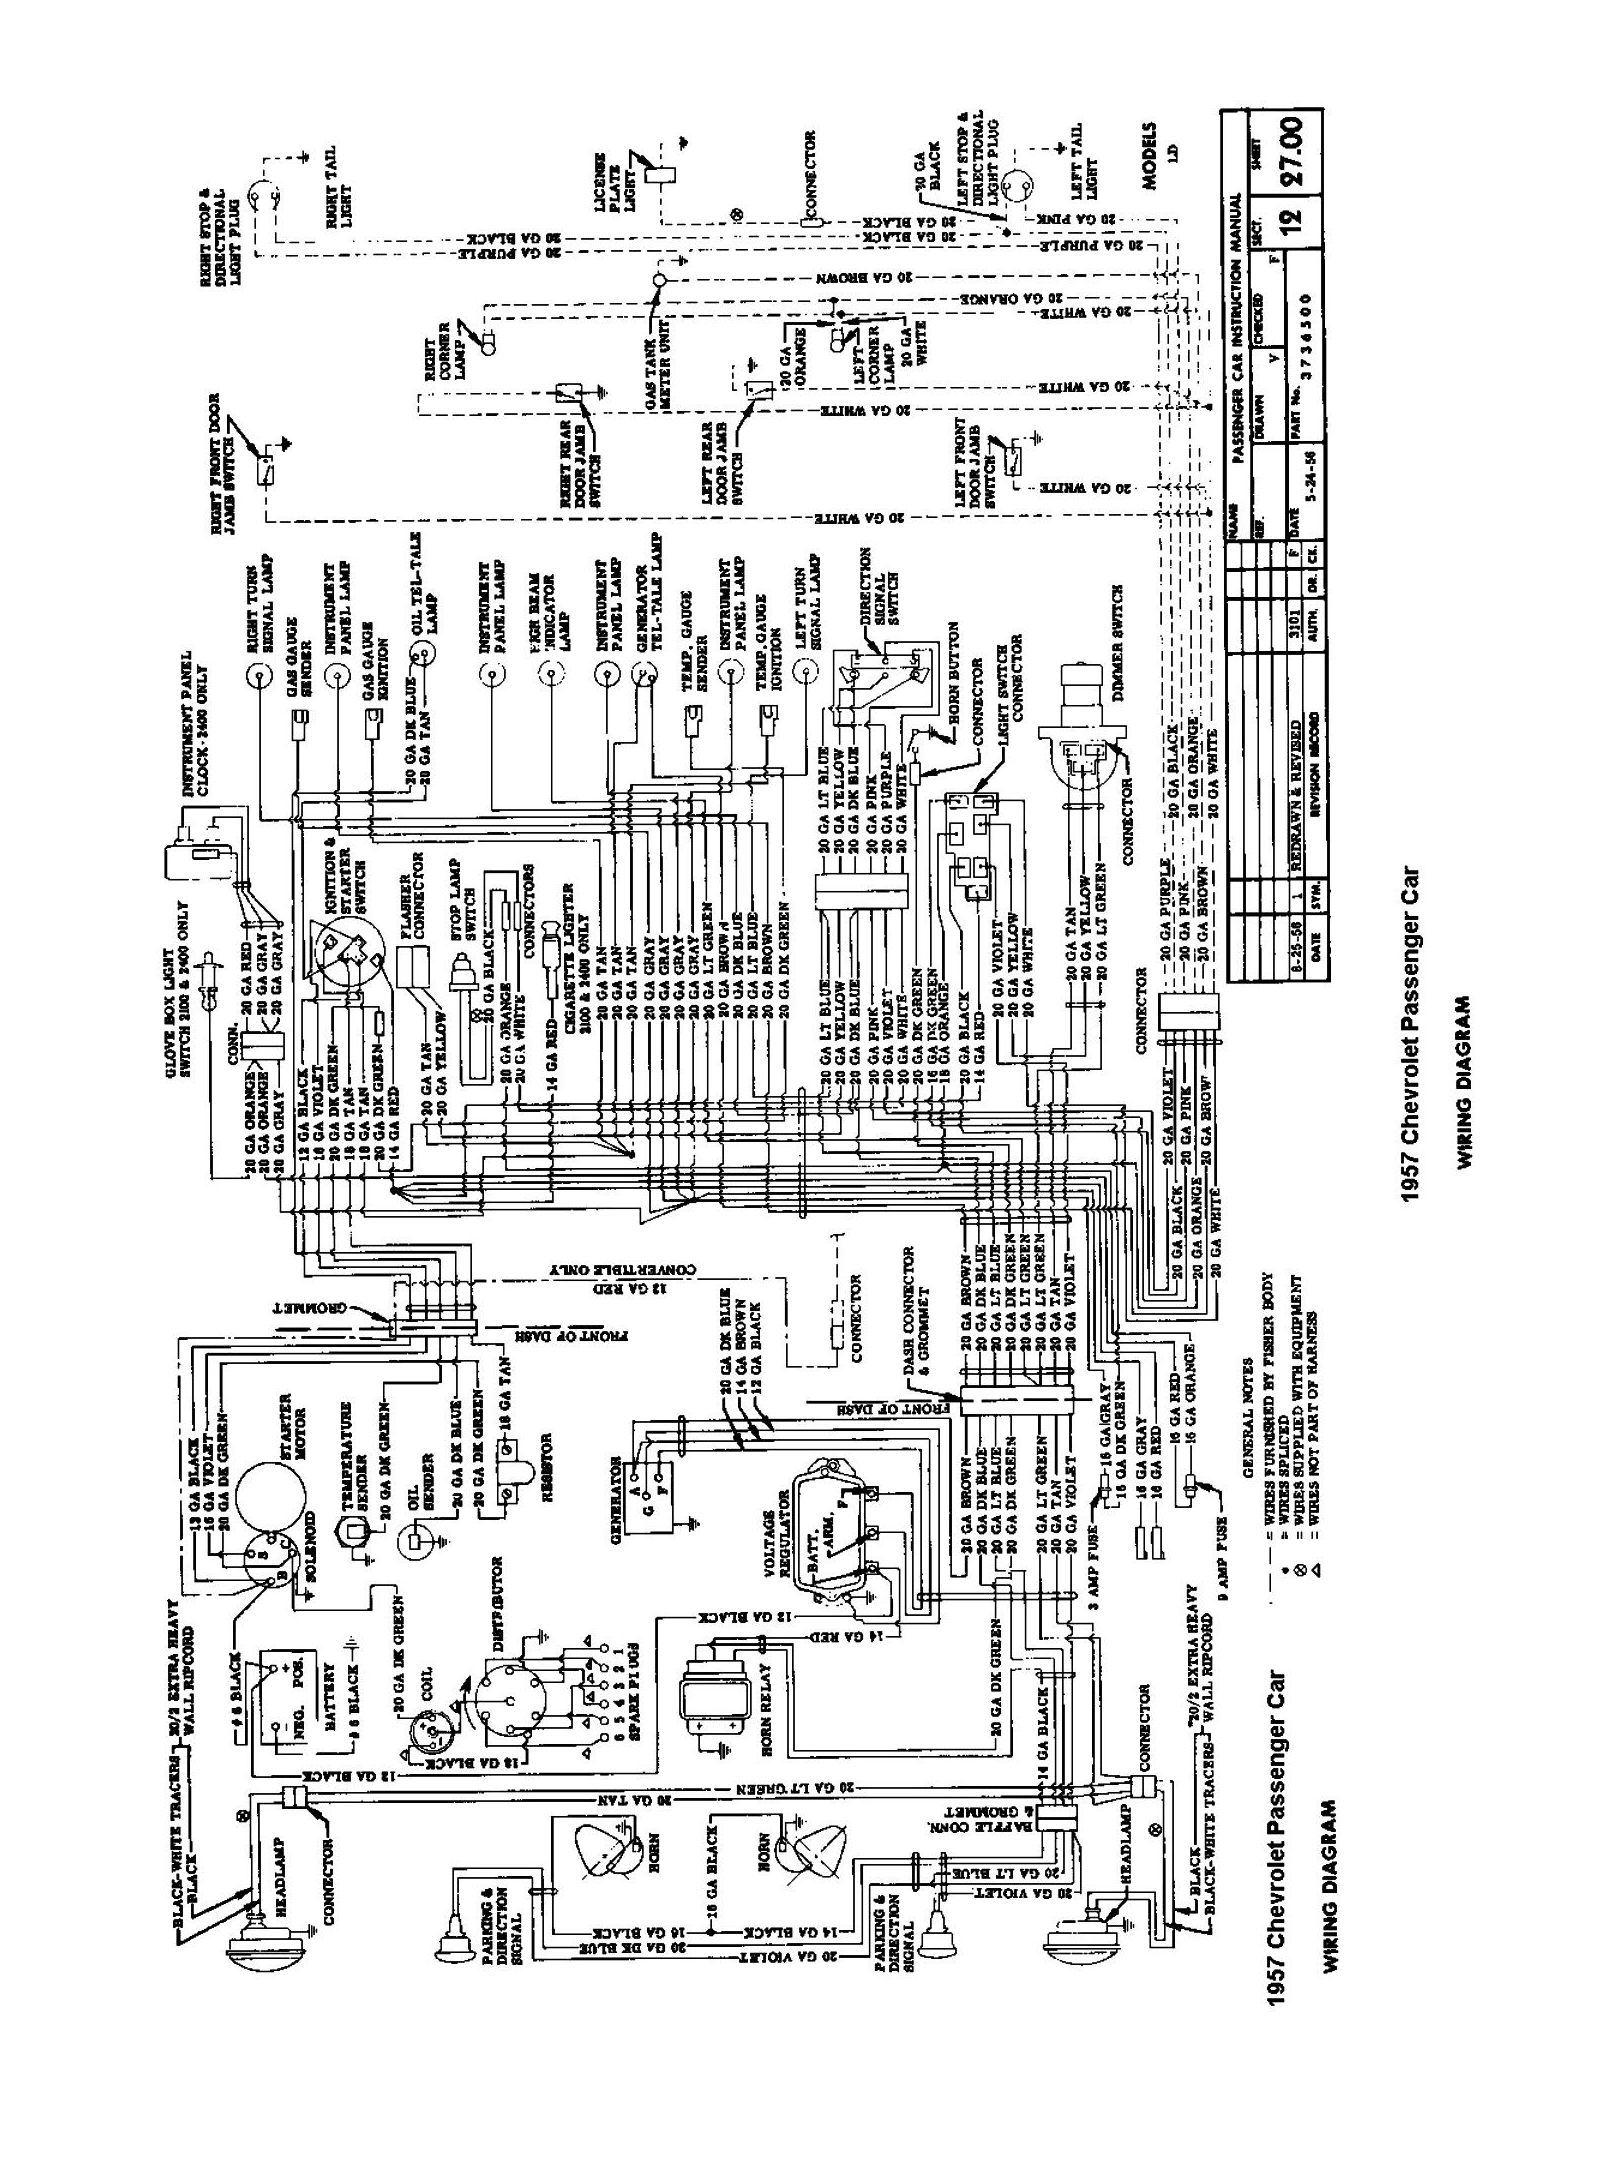 DIAGRAM] 40 Chevy Dash Wiring Diagram FULL Version HD Quality ...